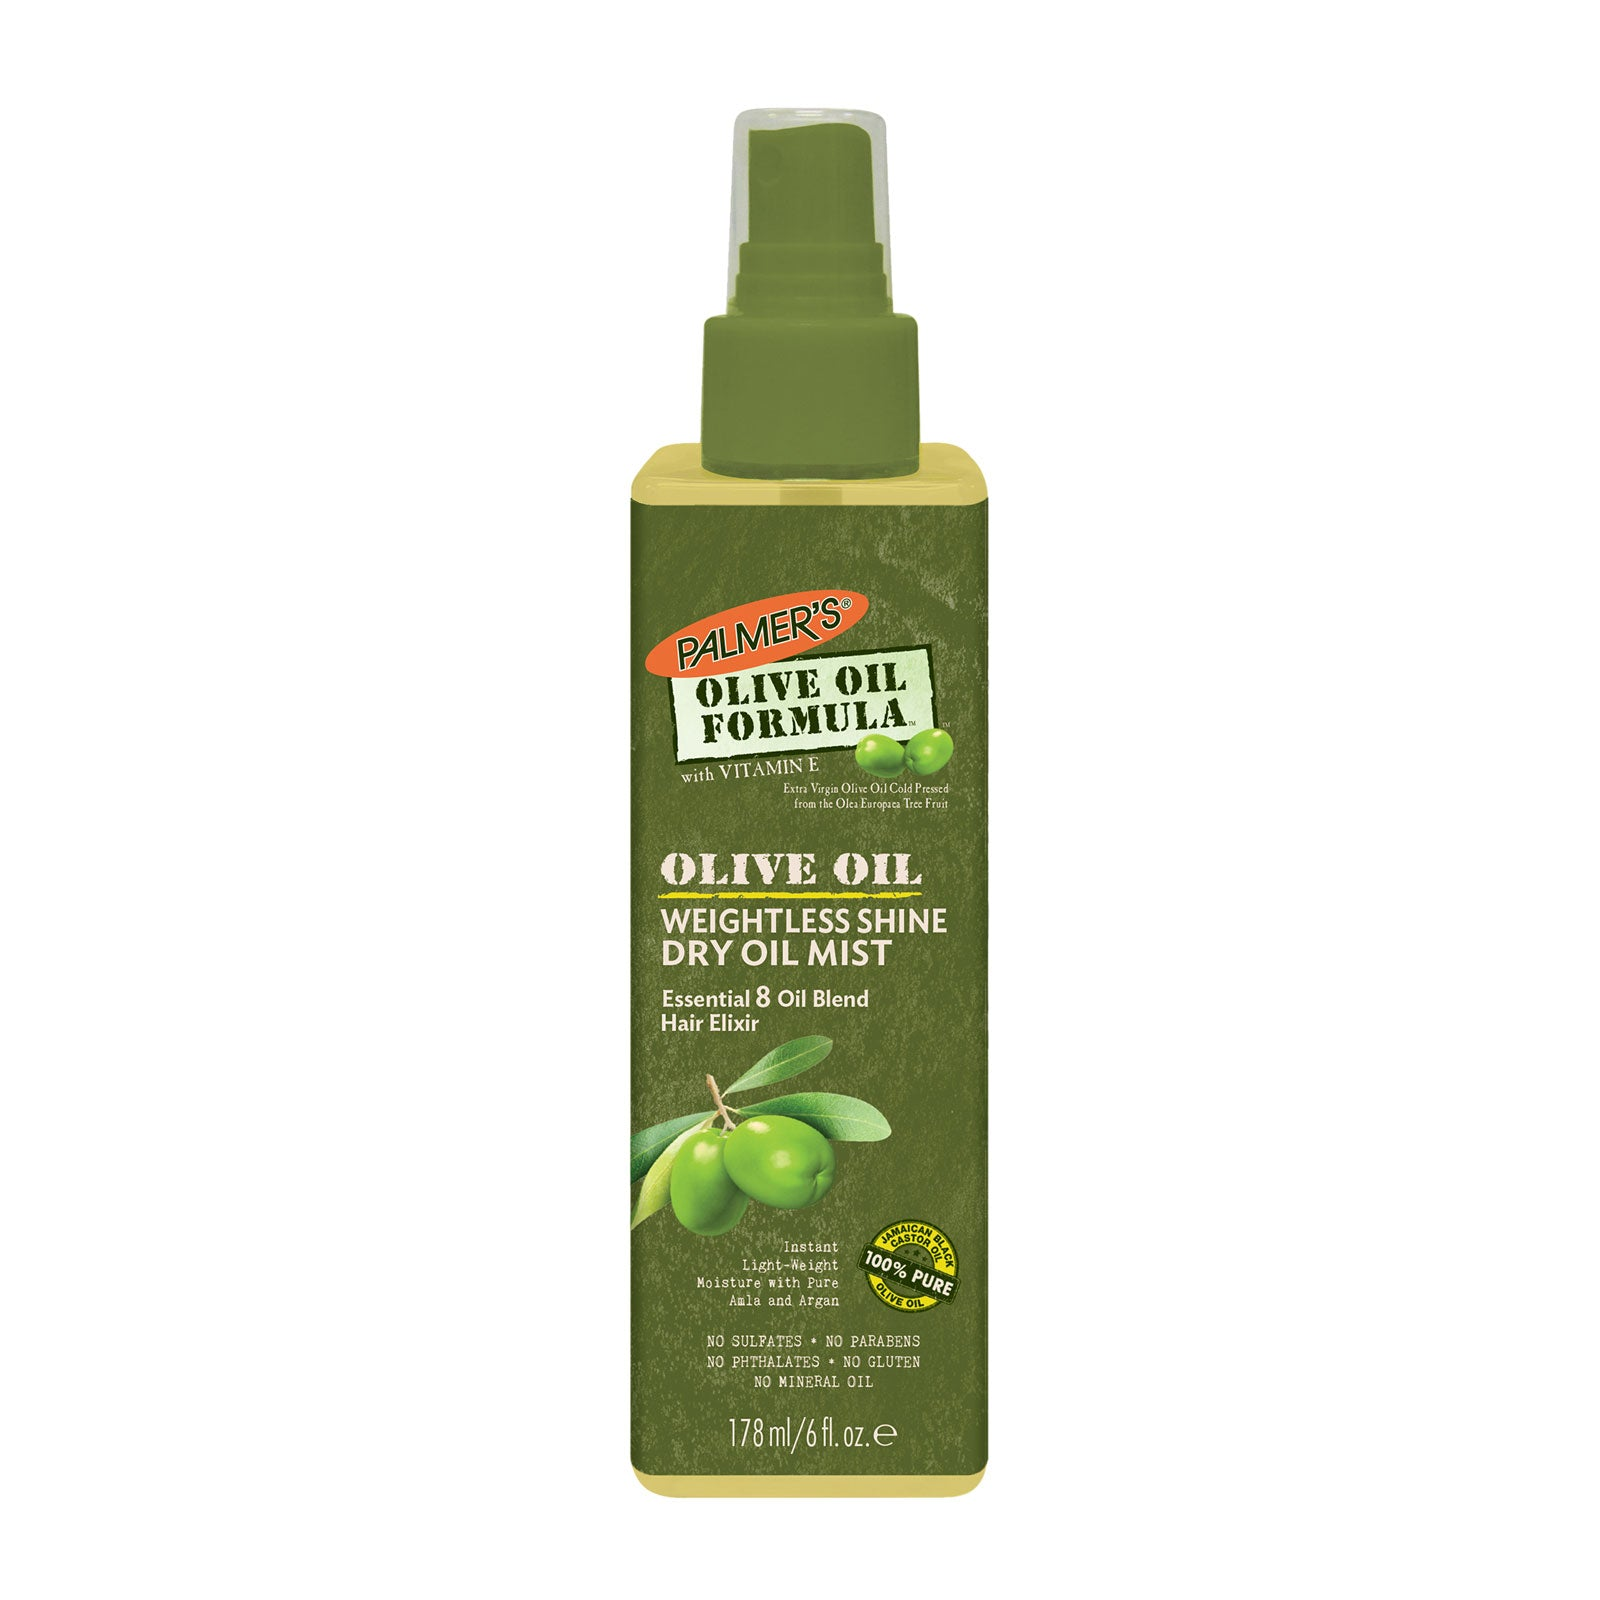 Palmer's Olive Oil Formula Weightless Shine Dry Oil Mist 178ml